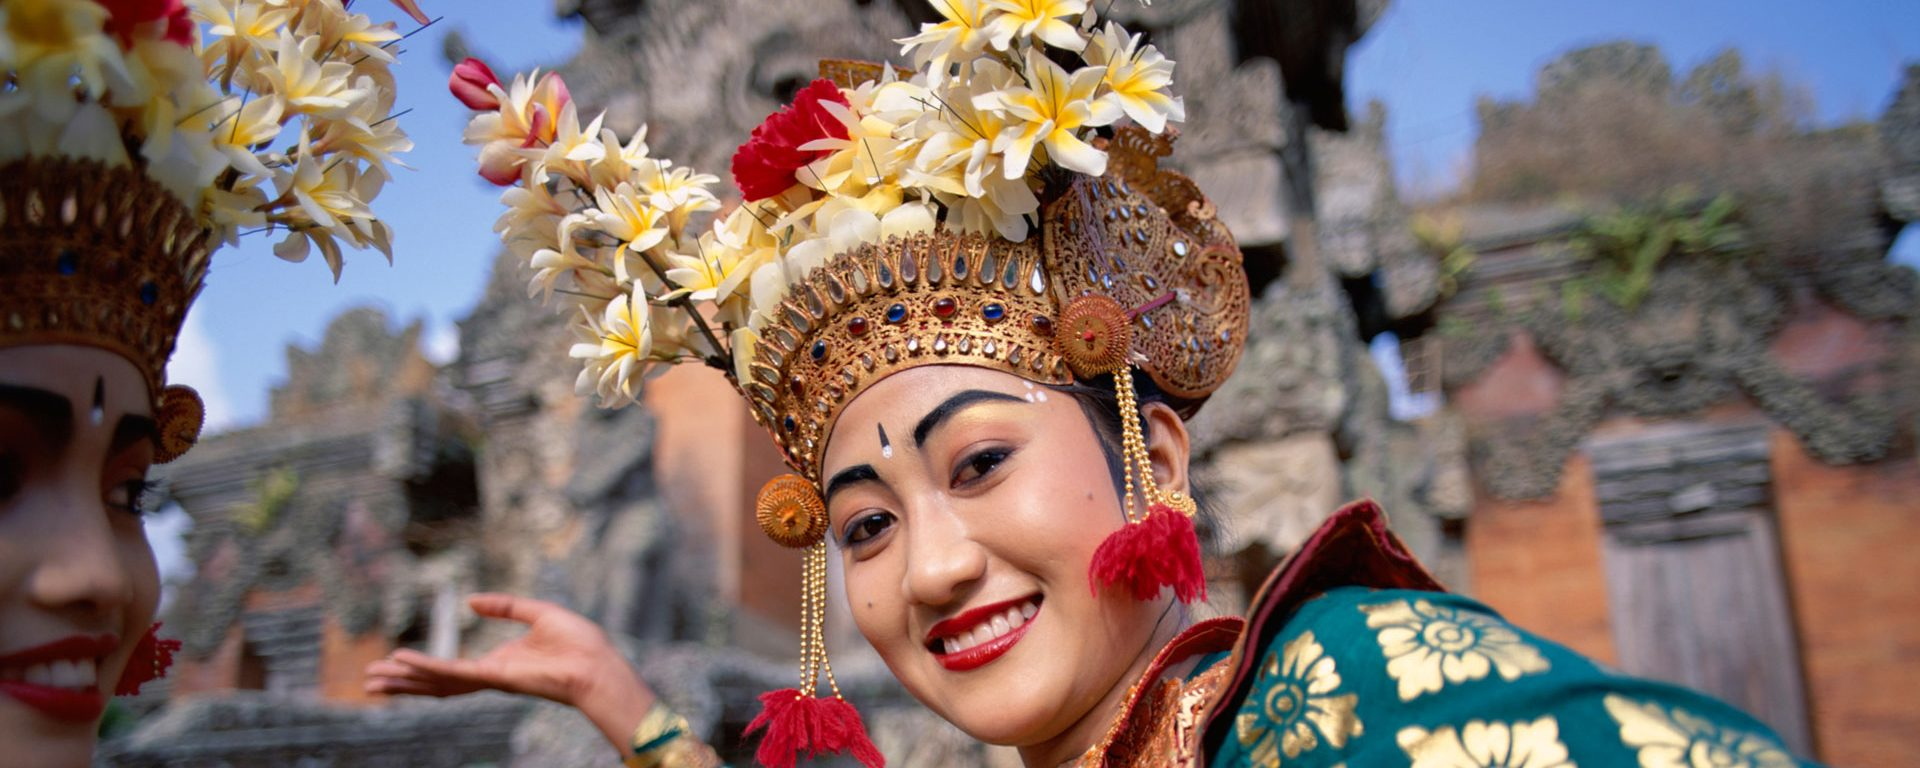 Woman dressed in traditional Legong dance costume, Bali, Indonesia